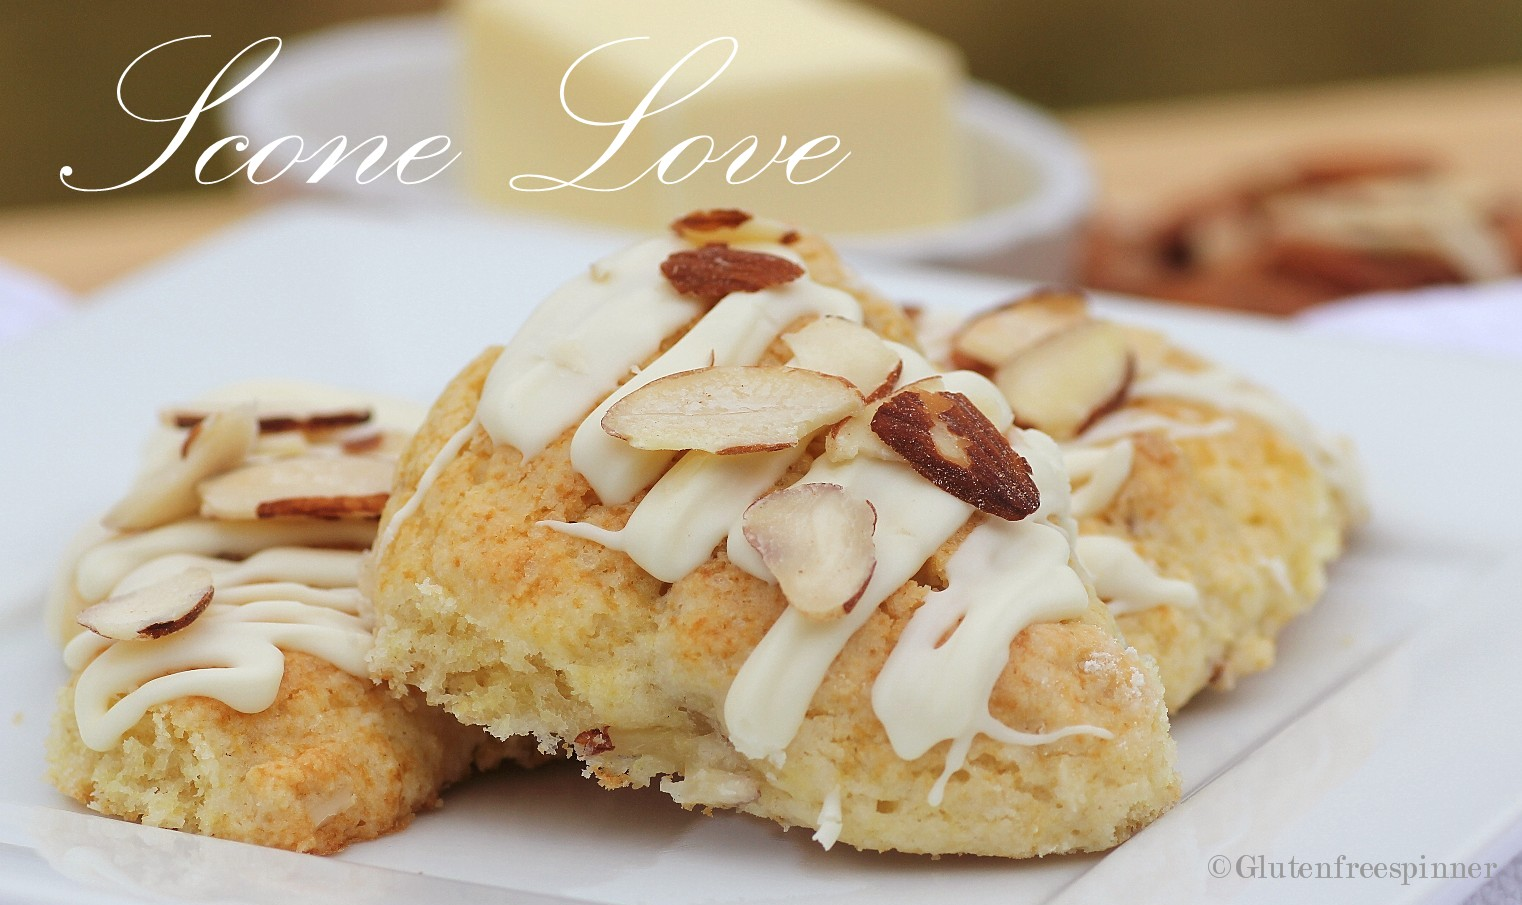 Almond+Scones.2.scone+love.JPG